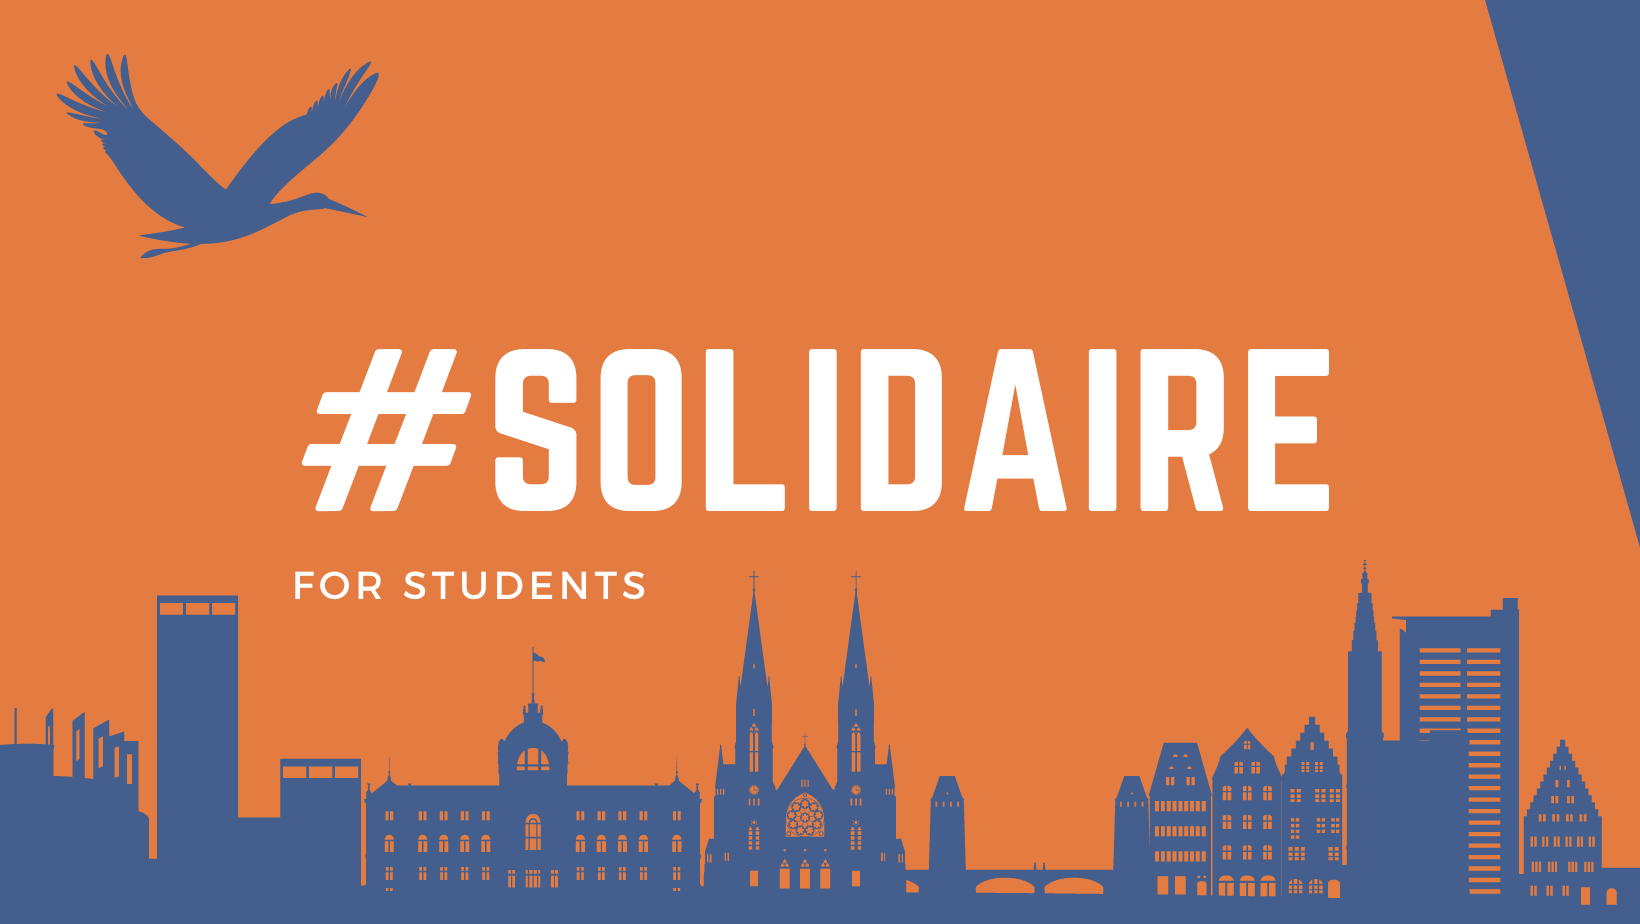 #solidaire